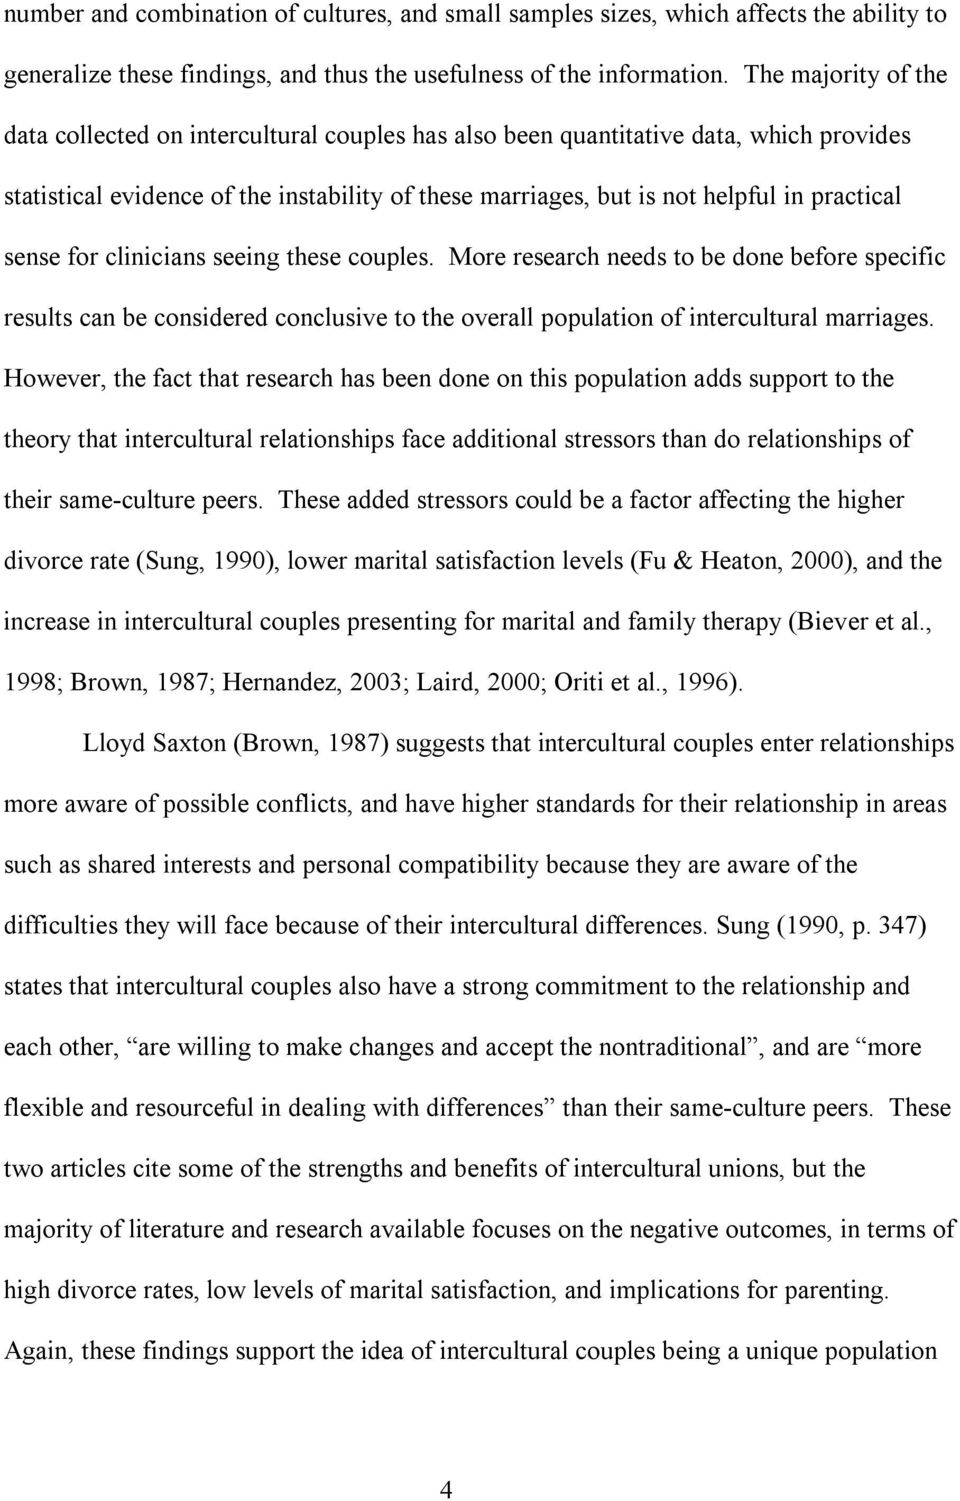 sense for clinicians seeing these couples. More research needs to be done before specific results can be considered conclusive to the overall population of intercultural marriages.